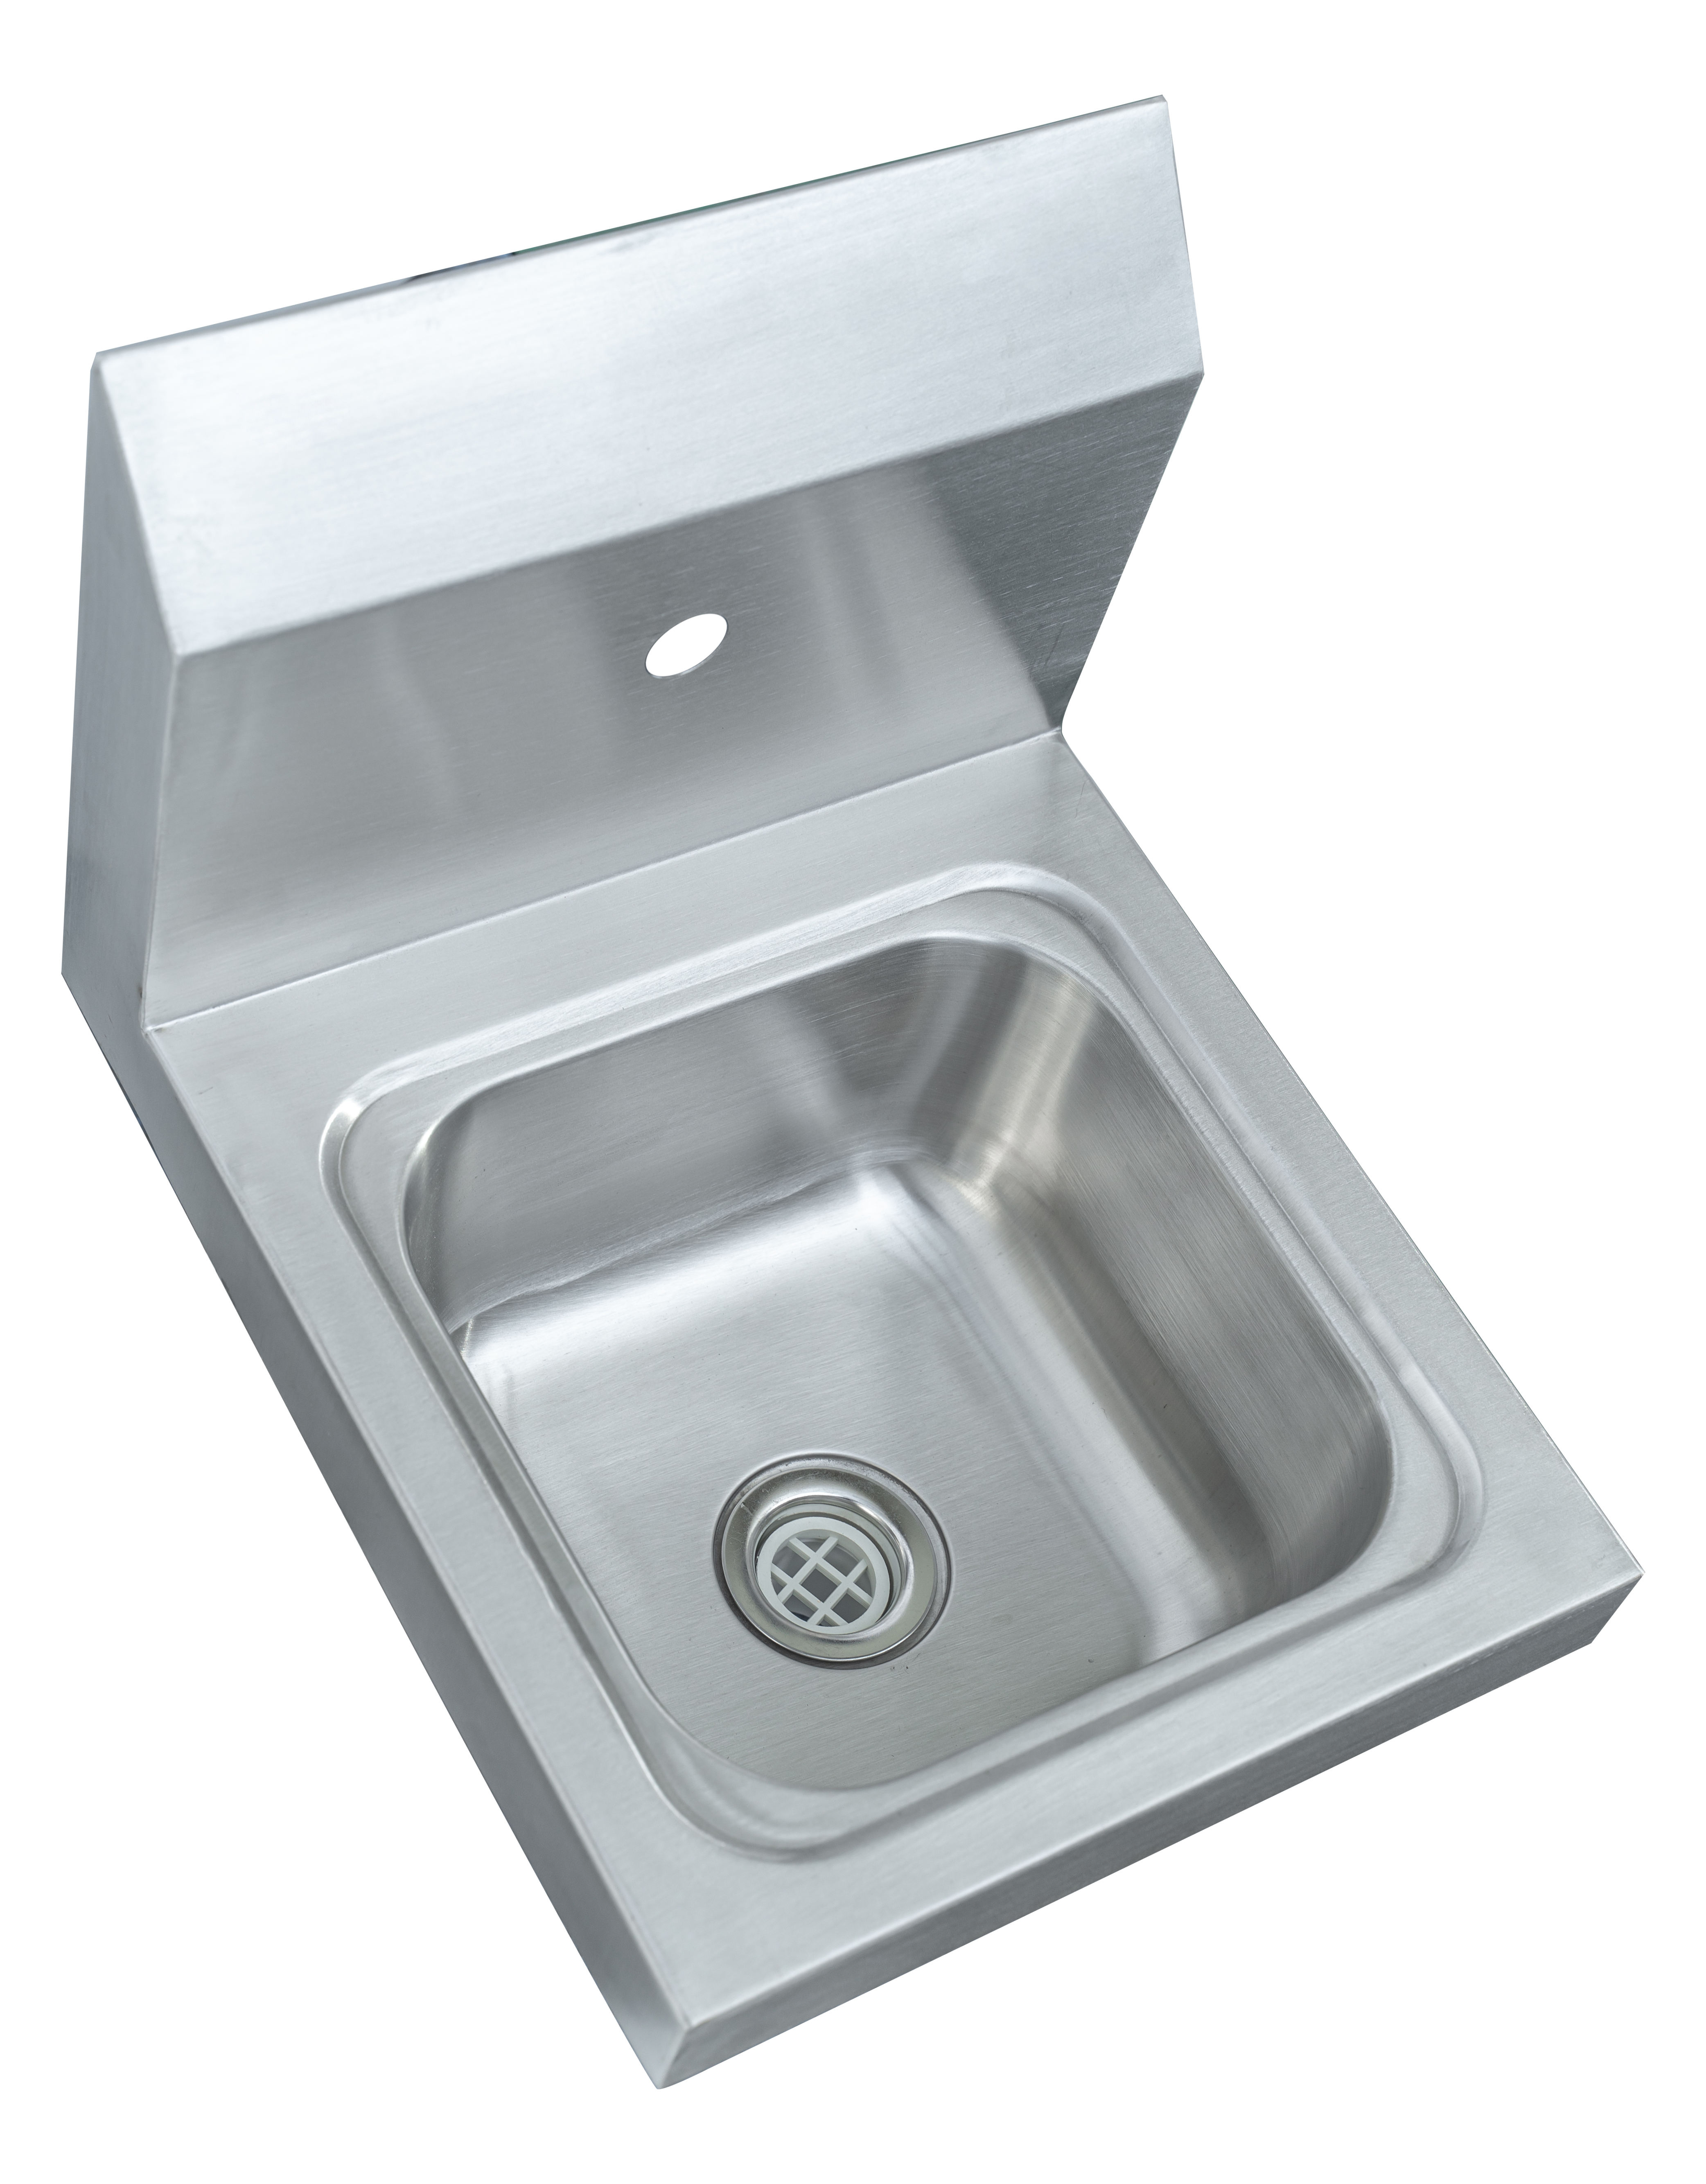 china stainless steel handmade sinks garbage disposals customized stainless steel kitchen wares stainless steel slop hoppers manufacturer and supplier